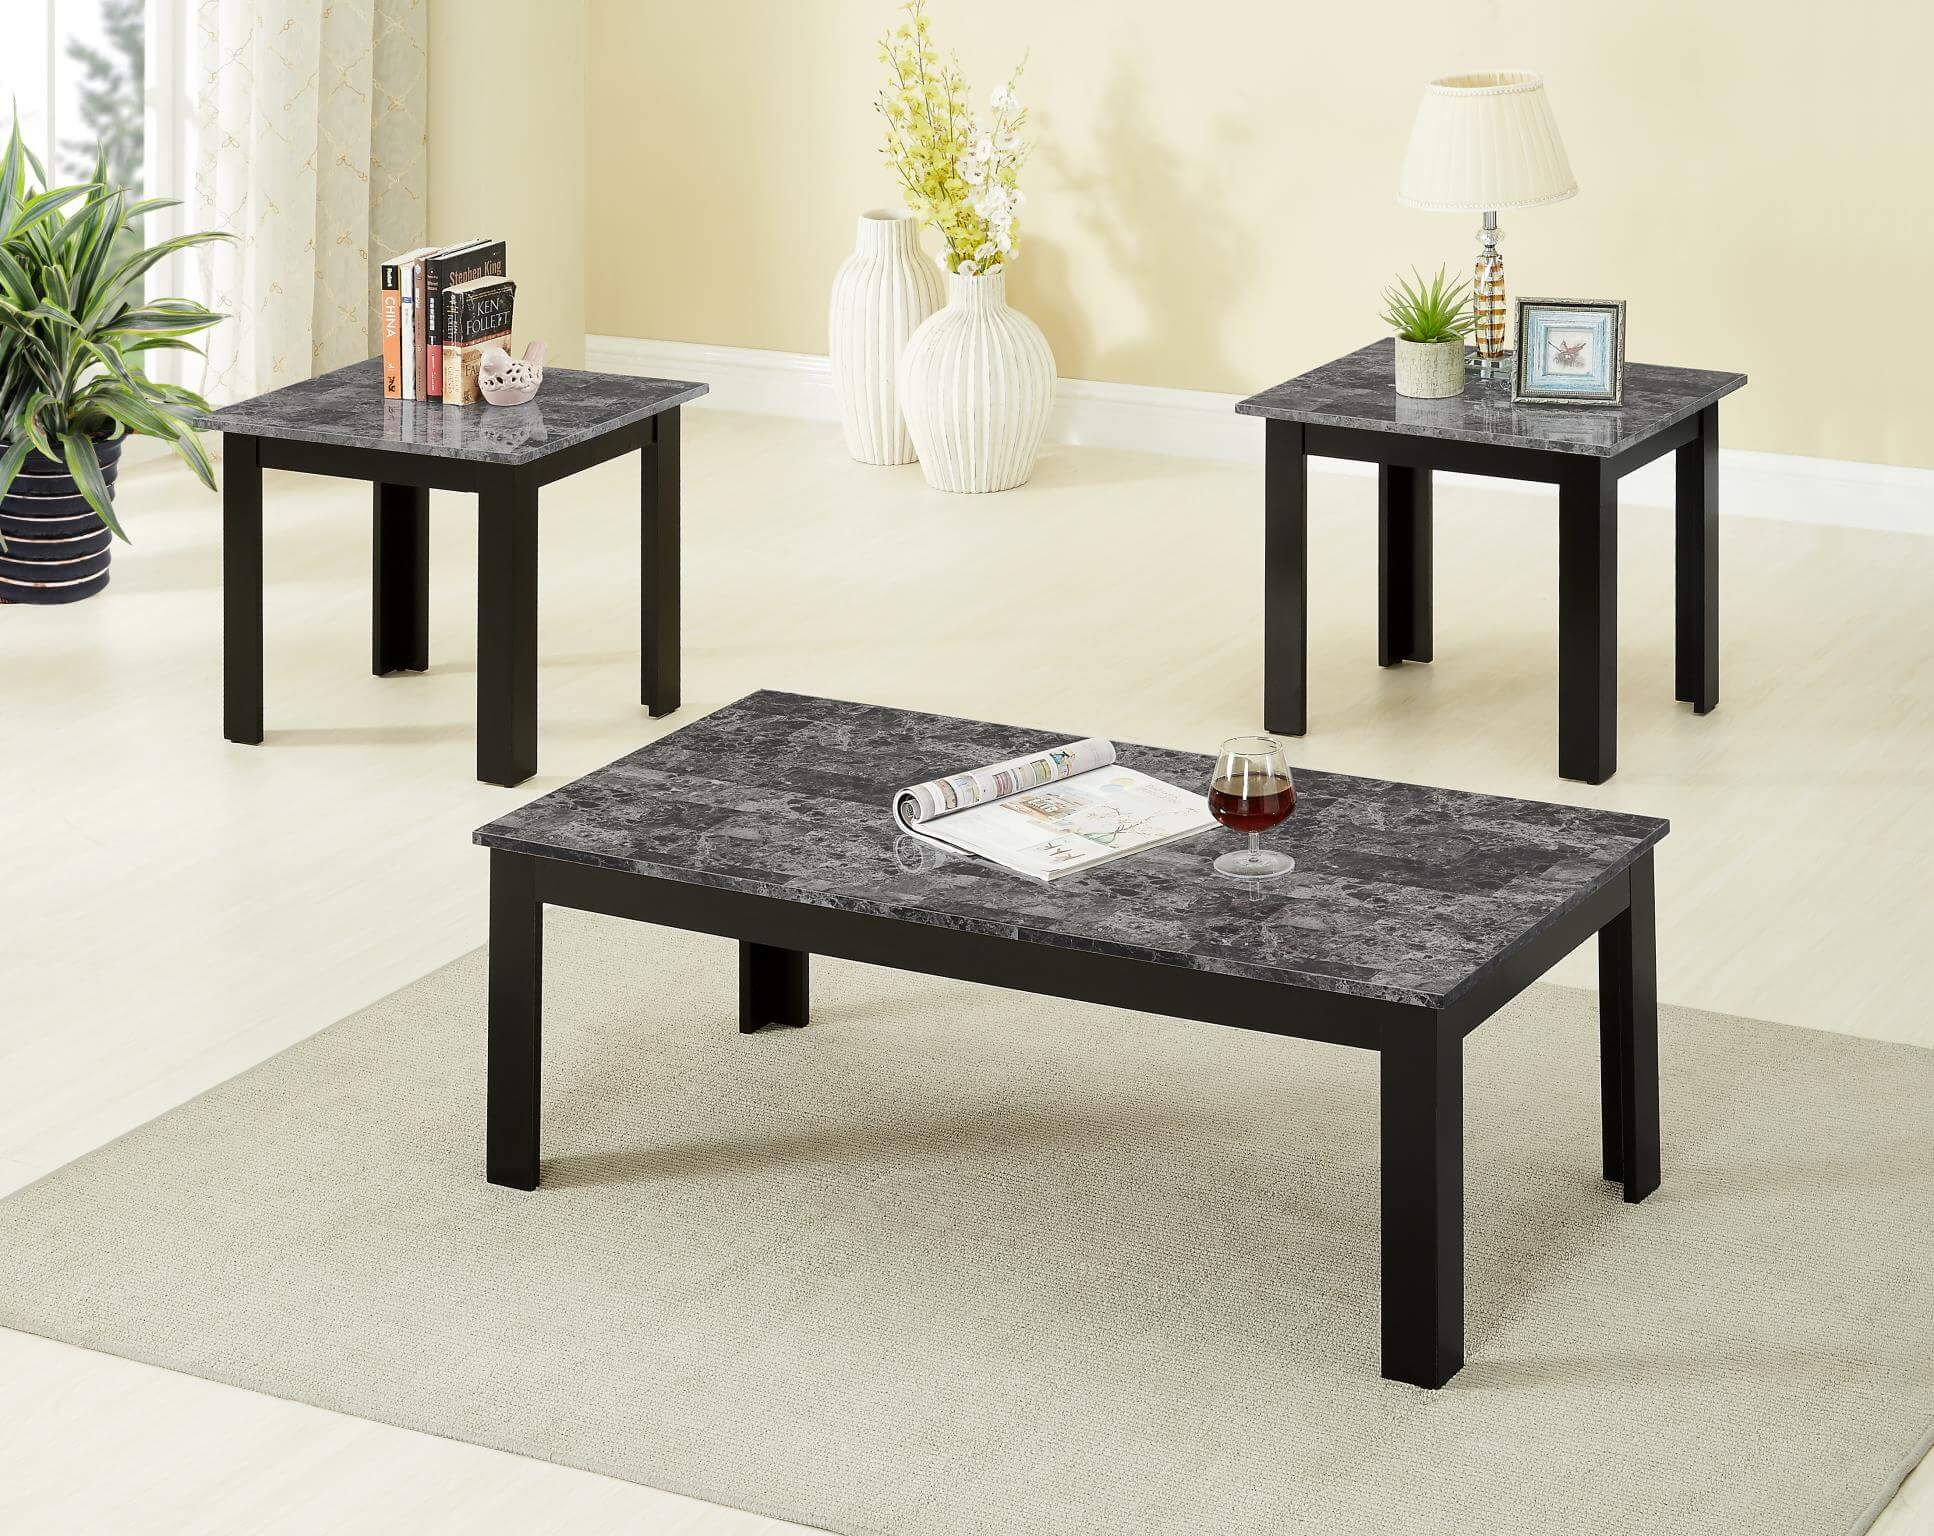 Charmant 3 Piece Black Faux Marble Coffee And End Table Set By Global Trading